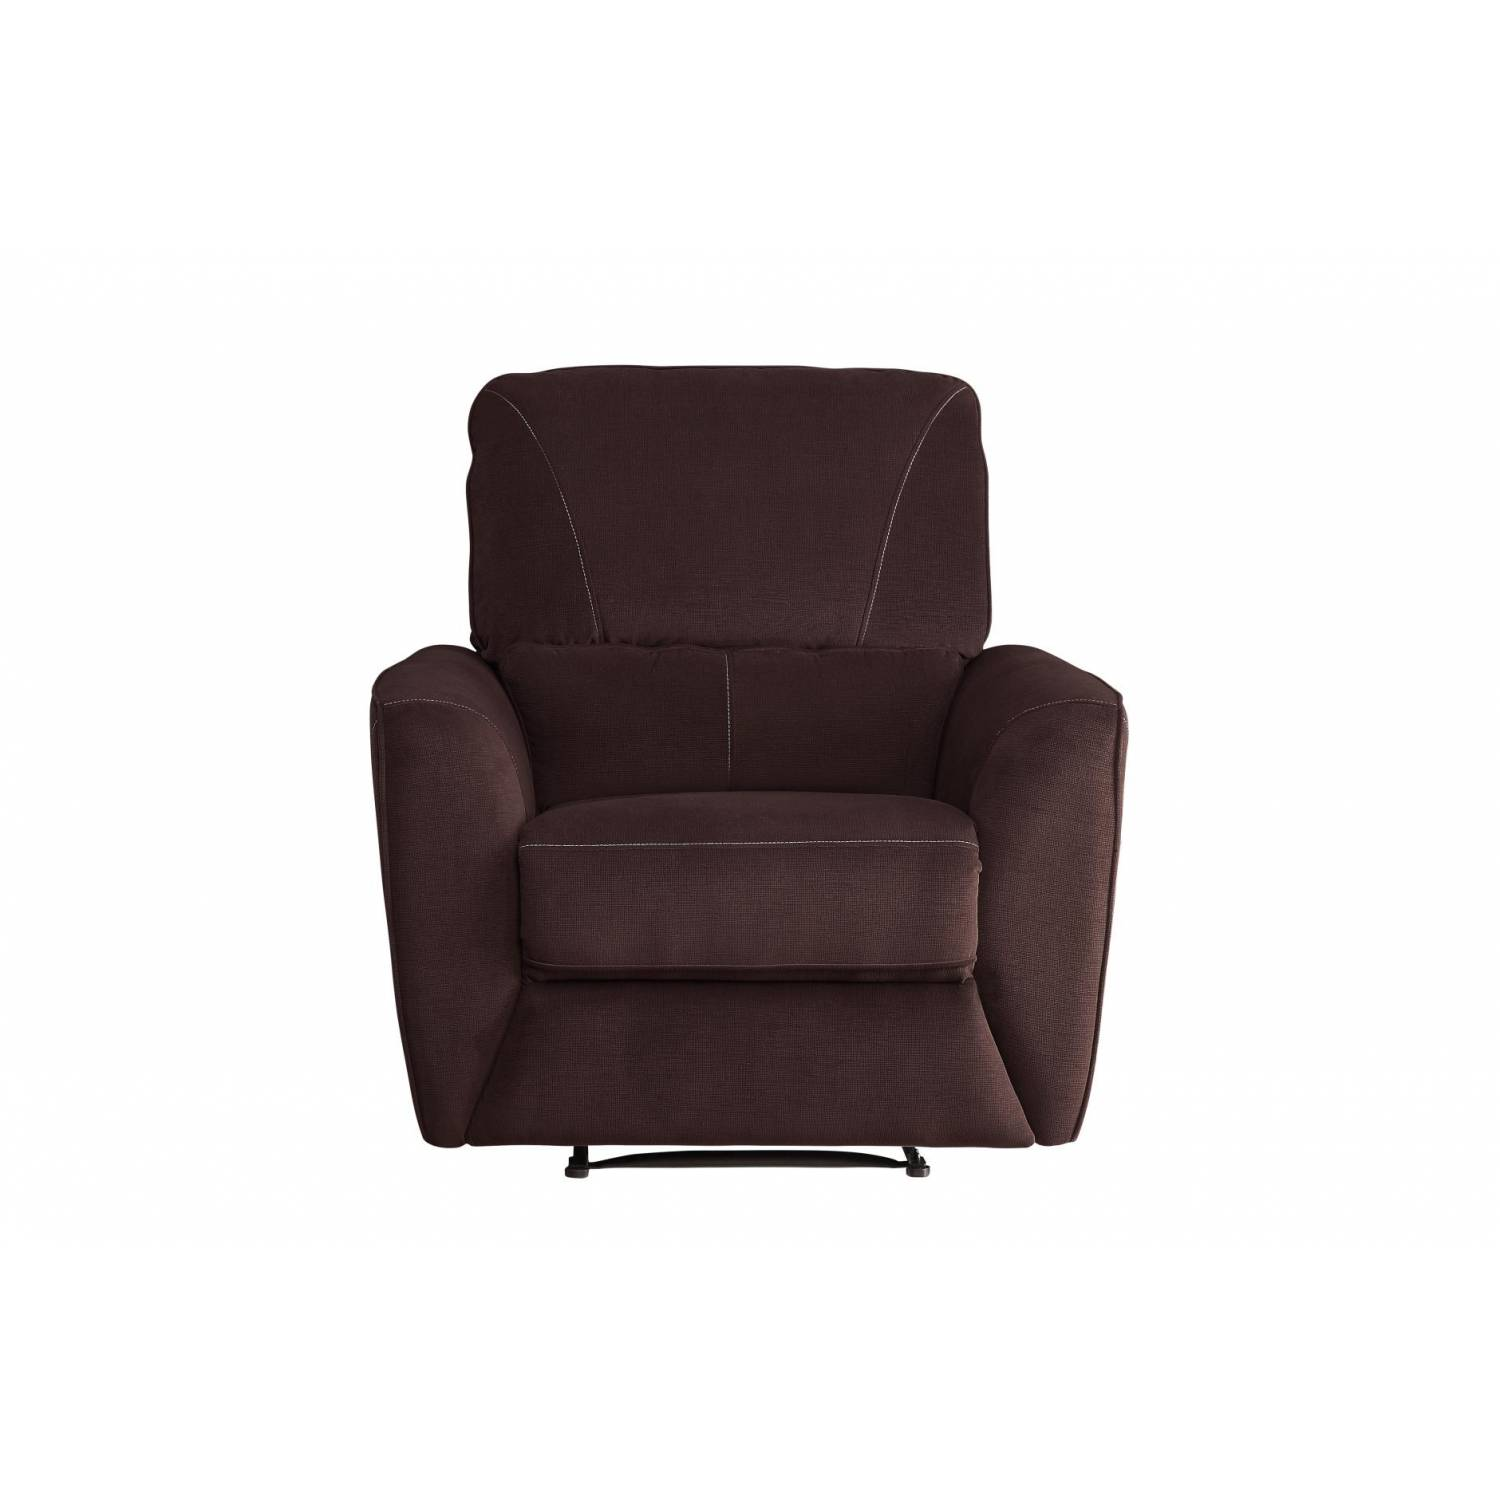 Double Recliner Chair 8257brw Dowling Double Reclining Chair